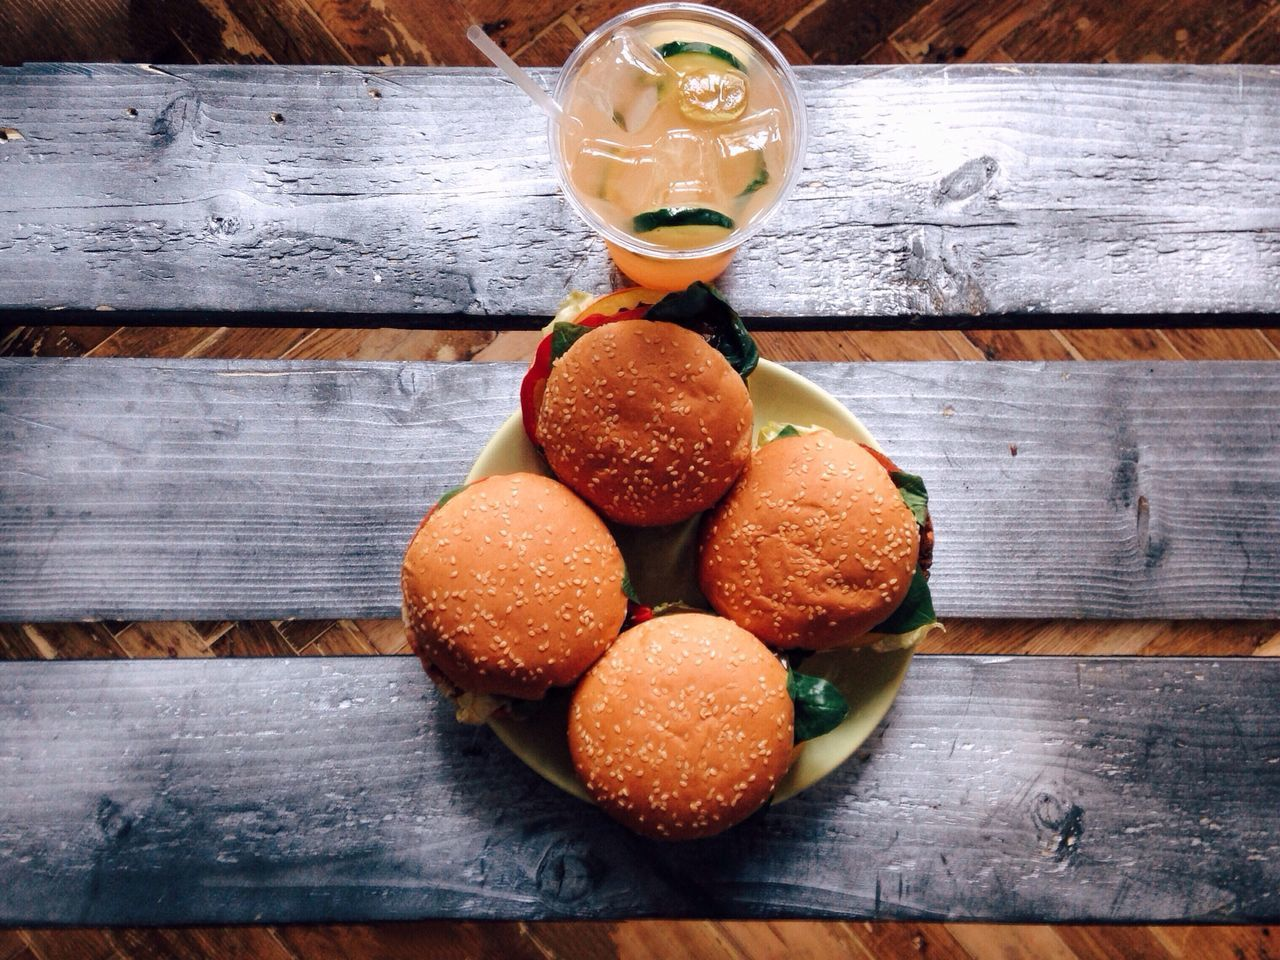 Burgers and fresh drink Wood - Material Food And Drink Freshness Indoors  Fruit Healthy Eating No People Food Food And Drink Drink Burger